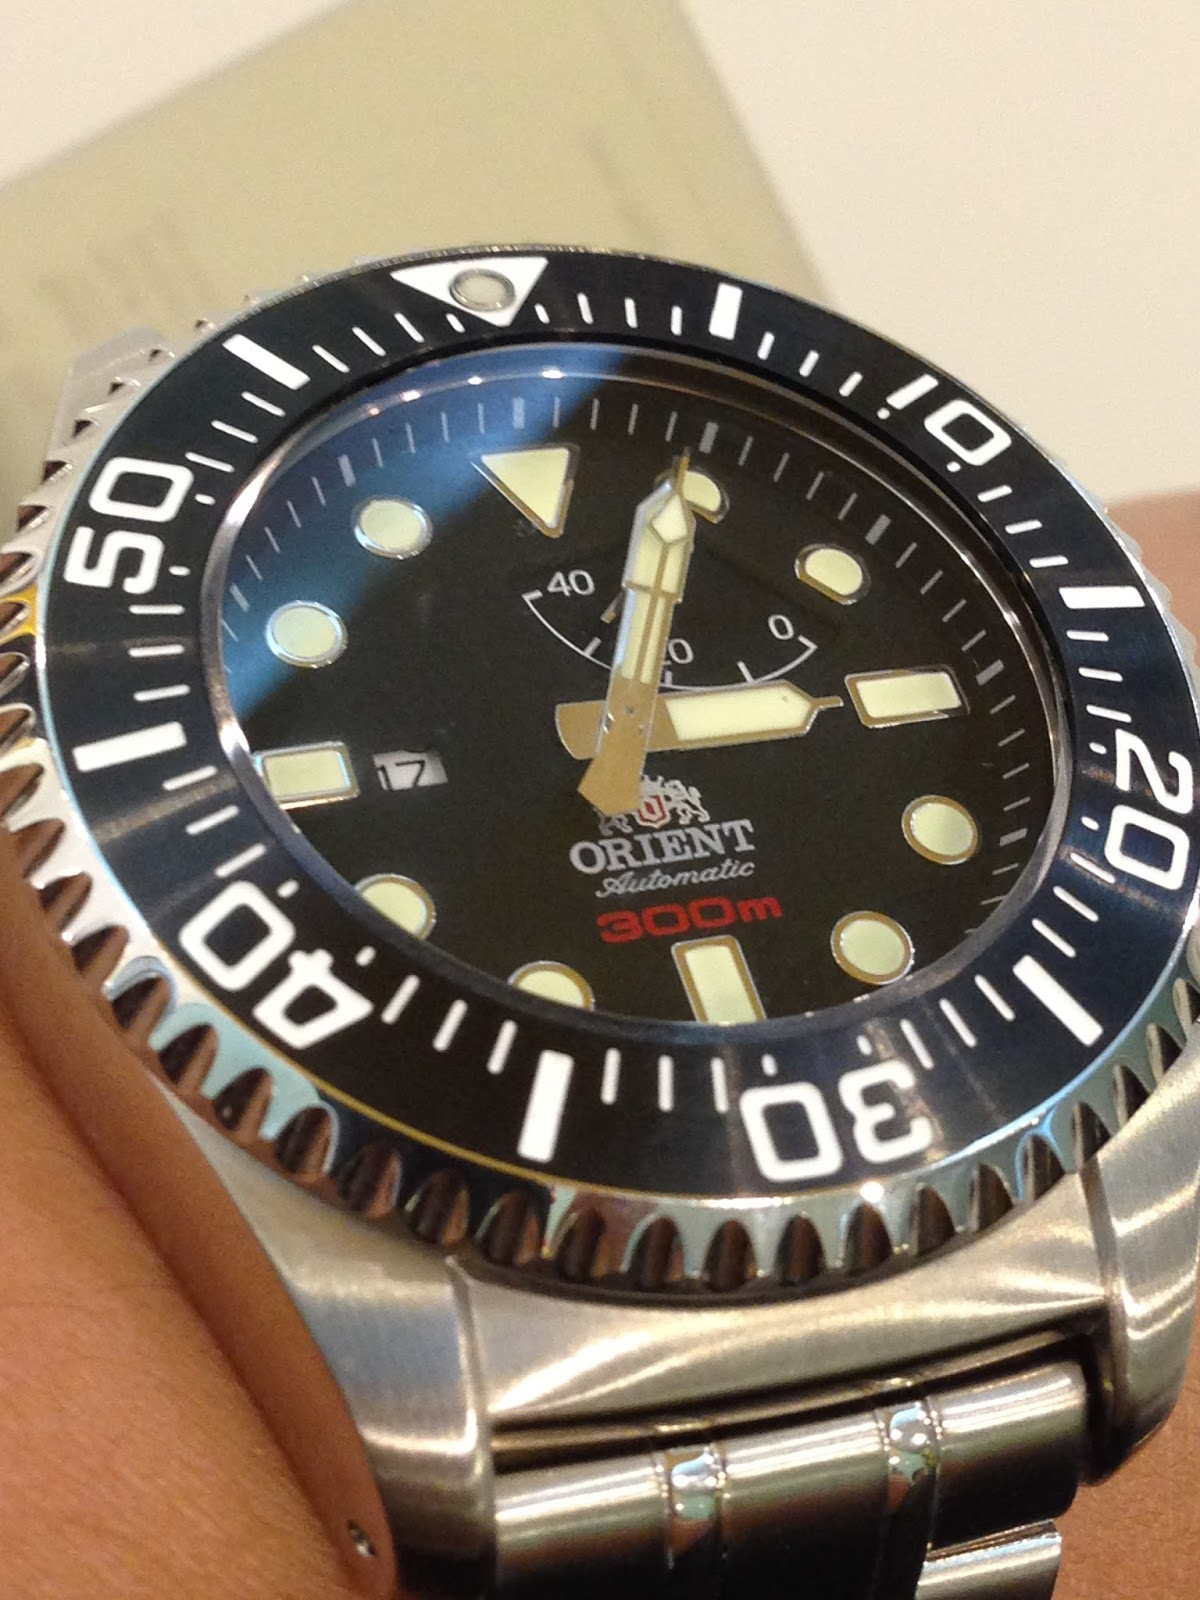 omega wednesday seamaster watches iso watchtime makes ploprof what watch a dive